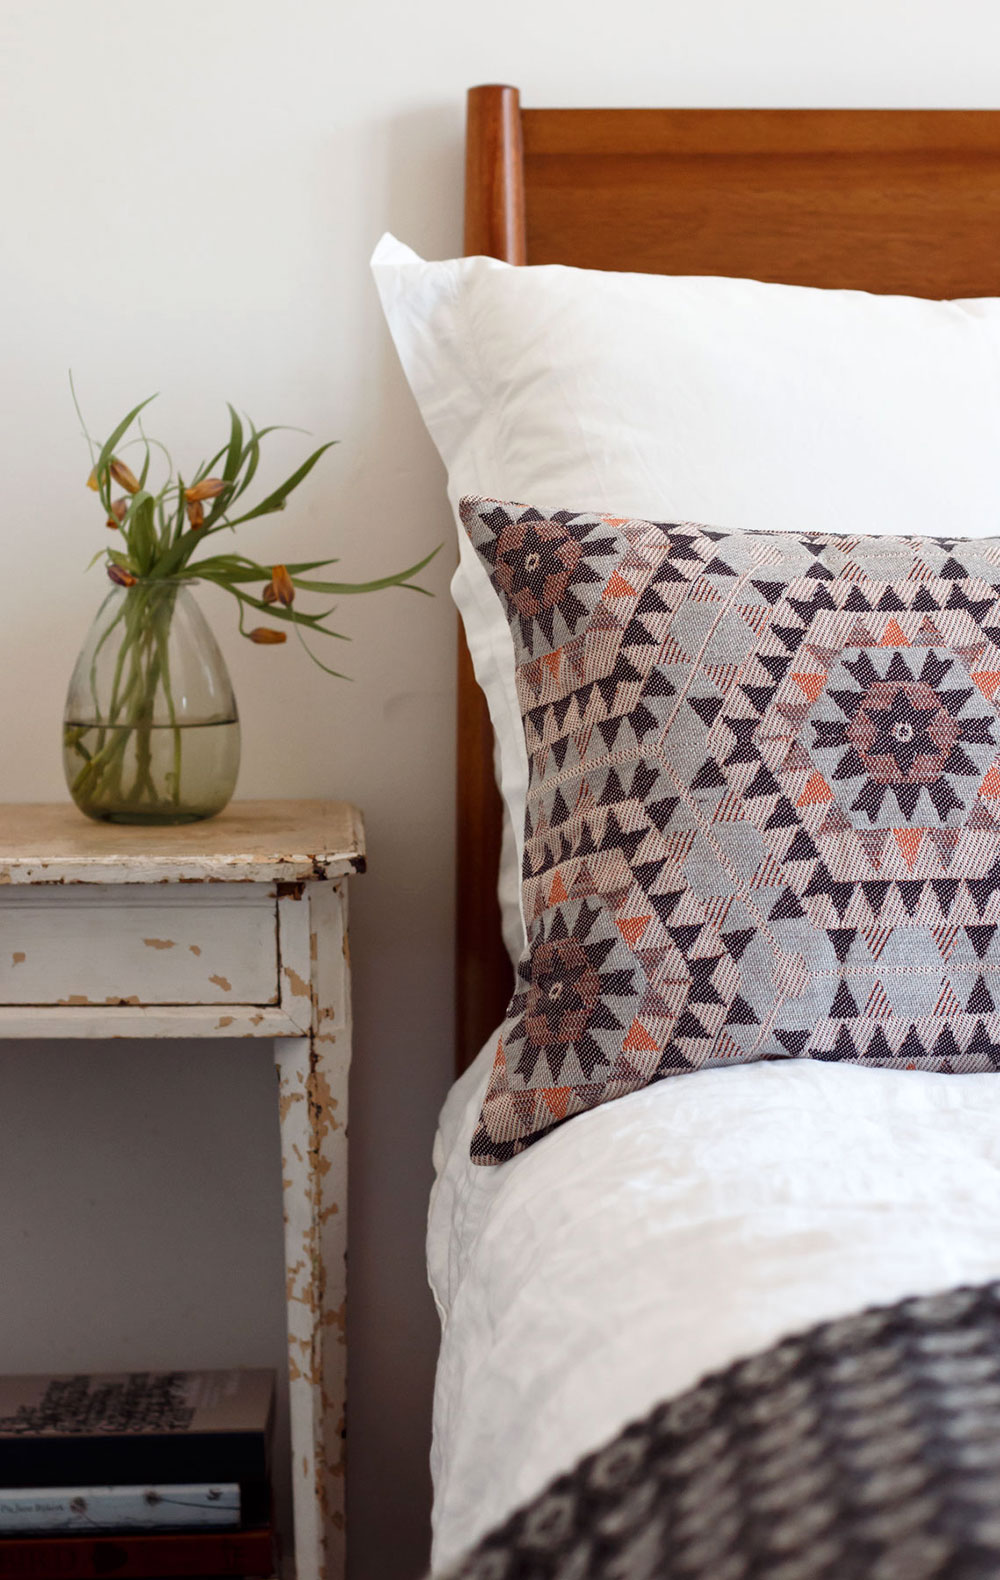 Aztec patterned cushion from the future kept